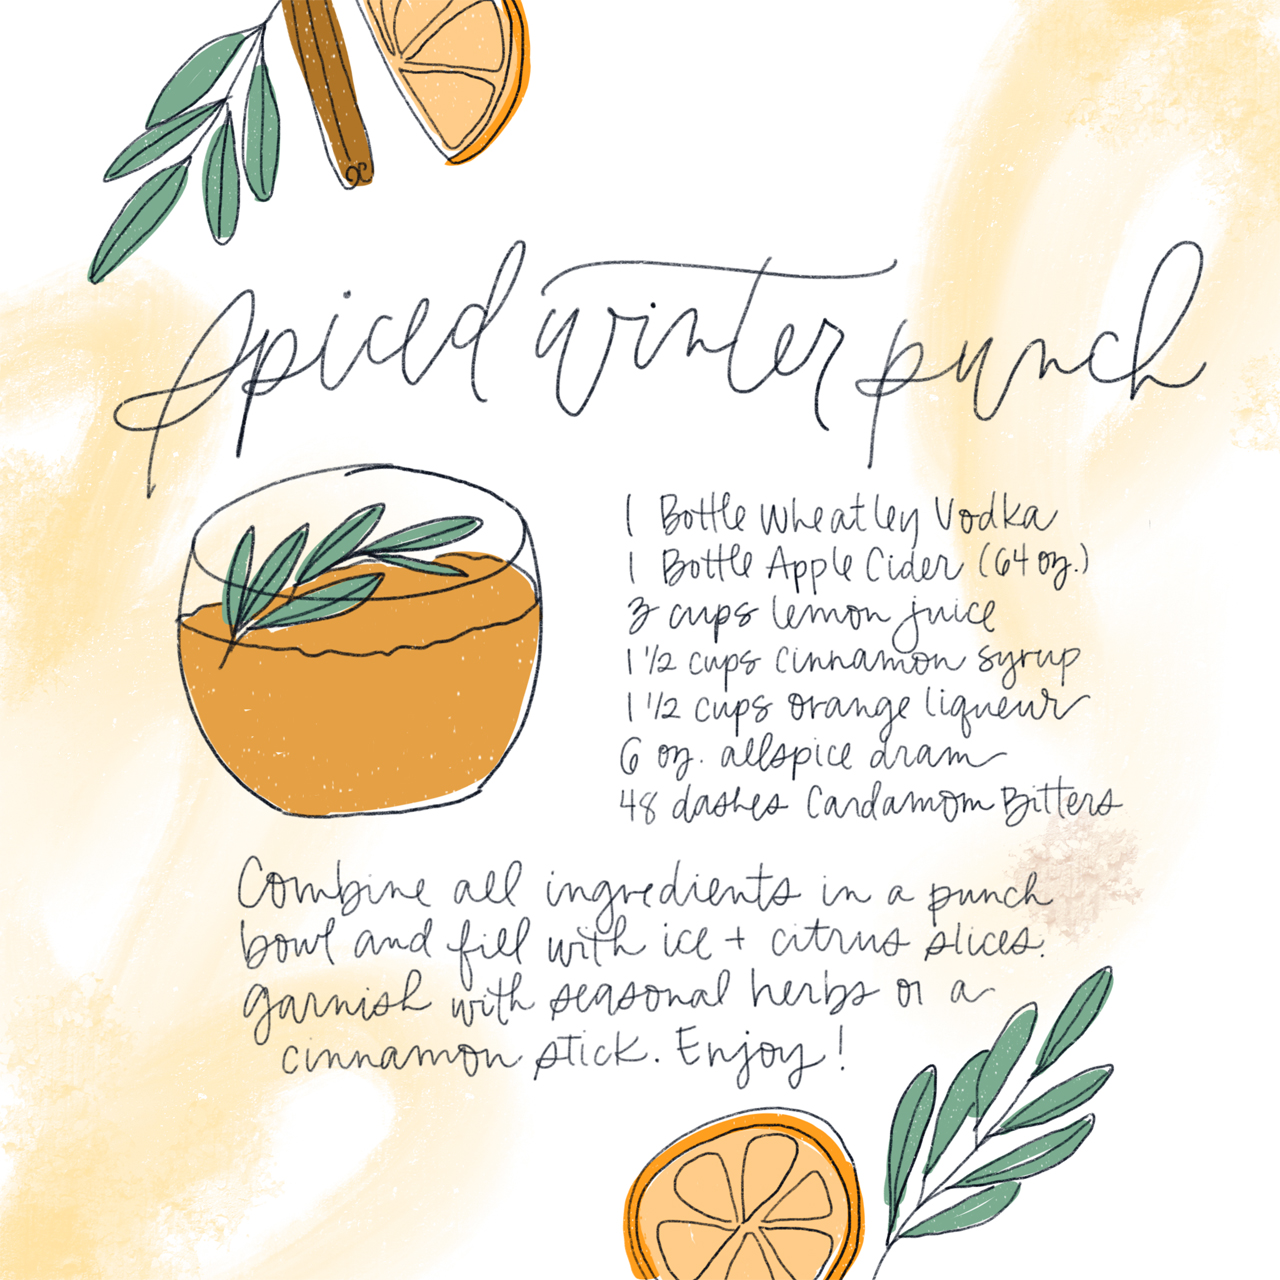 Spiced Winter Punch Holiday Cocktail Recipe